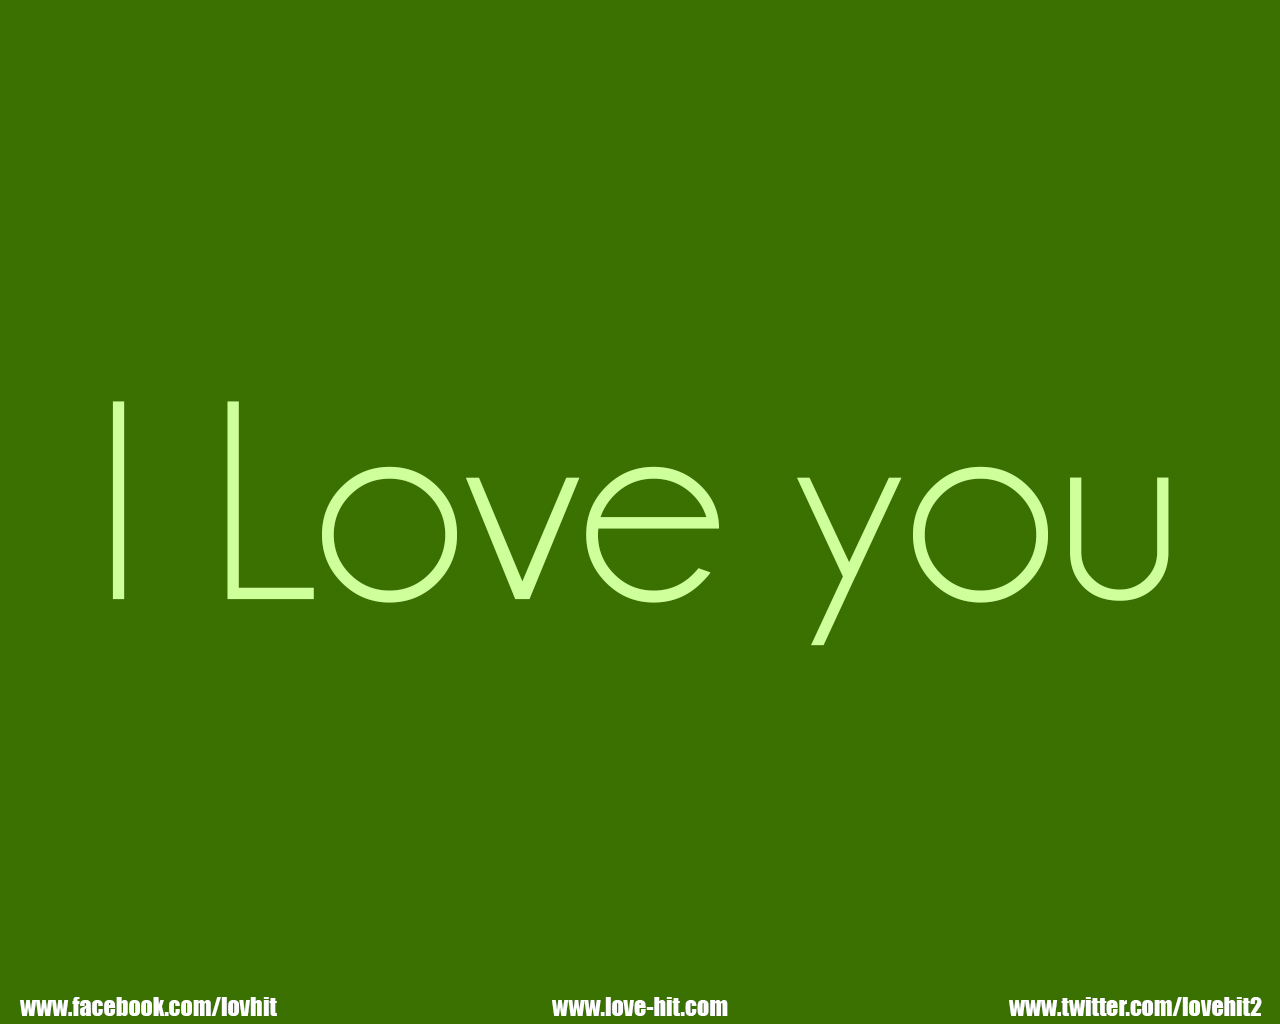 I Love you - Dull green